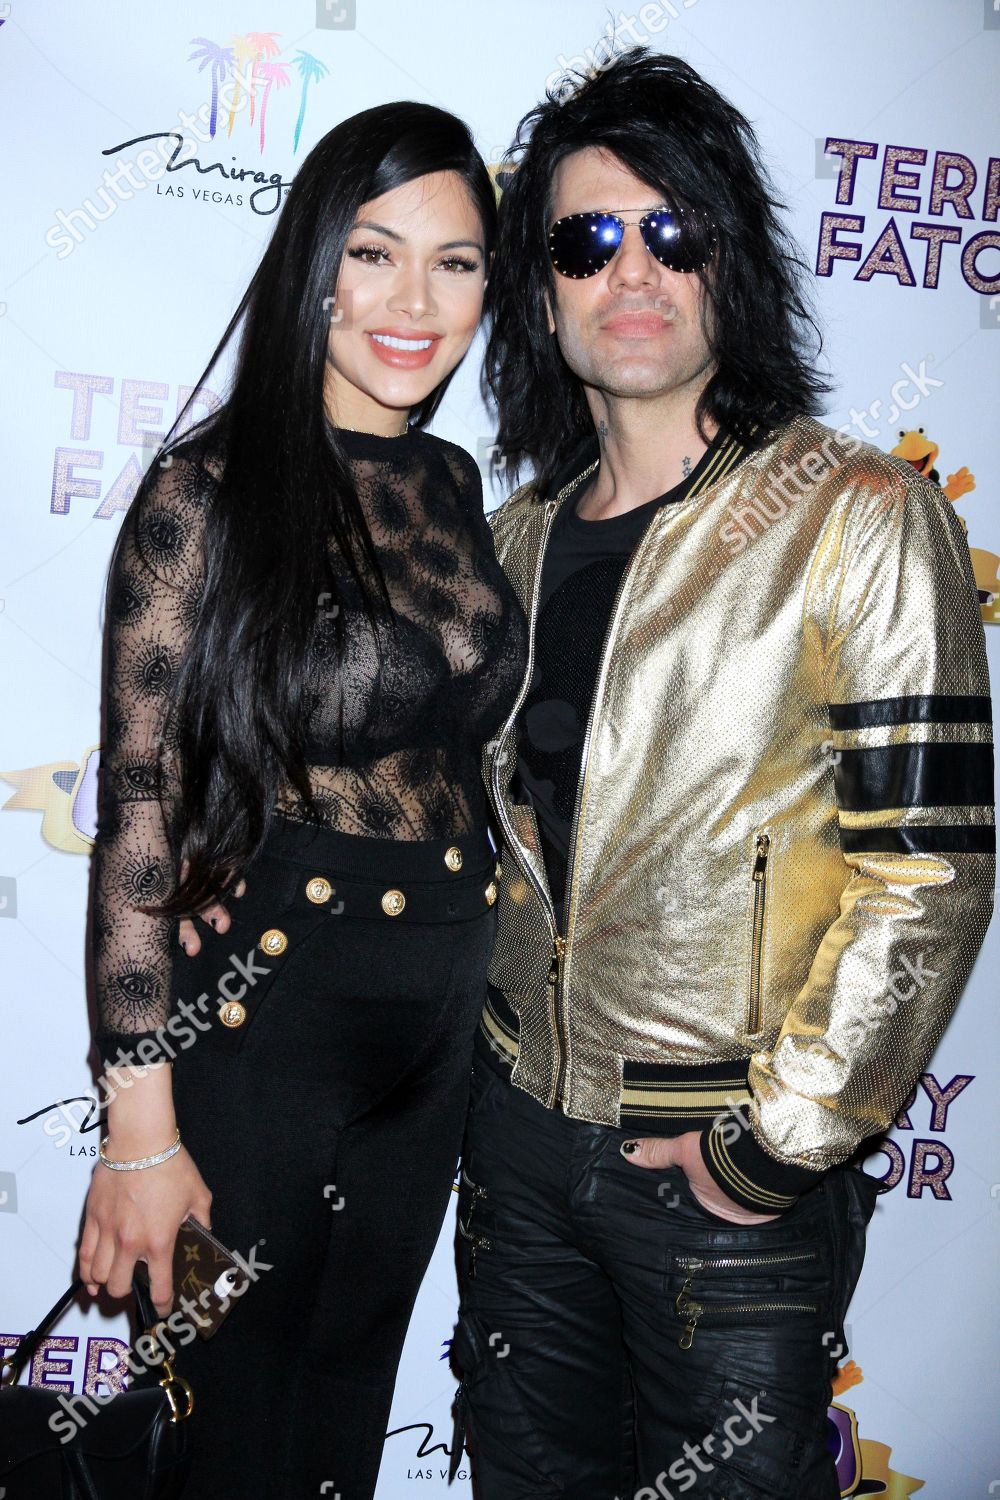 Criss Angel Shaunyl Benson Foto Editorial En Stock Imagen En Stock Shutterstock Strip headliner criss angel and shaunyl benson are expecting their second child in january. https www shutterstock com es editorial image editorial terry fator 10th anniversary americas got talent win celebration las vegas usa 15 mar 2019 10157817ab